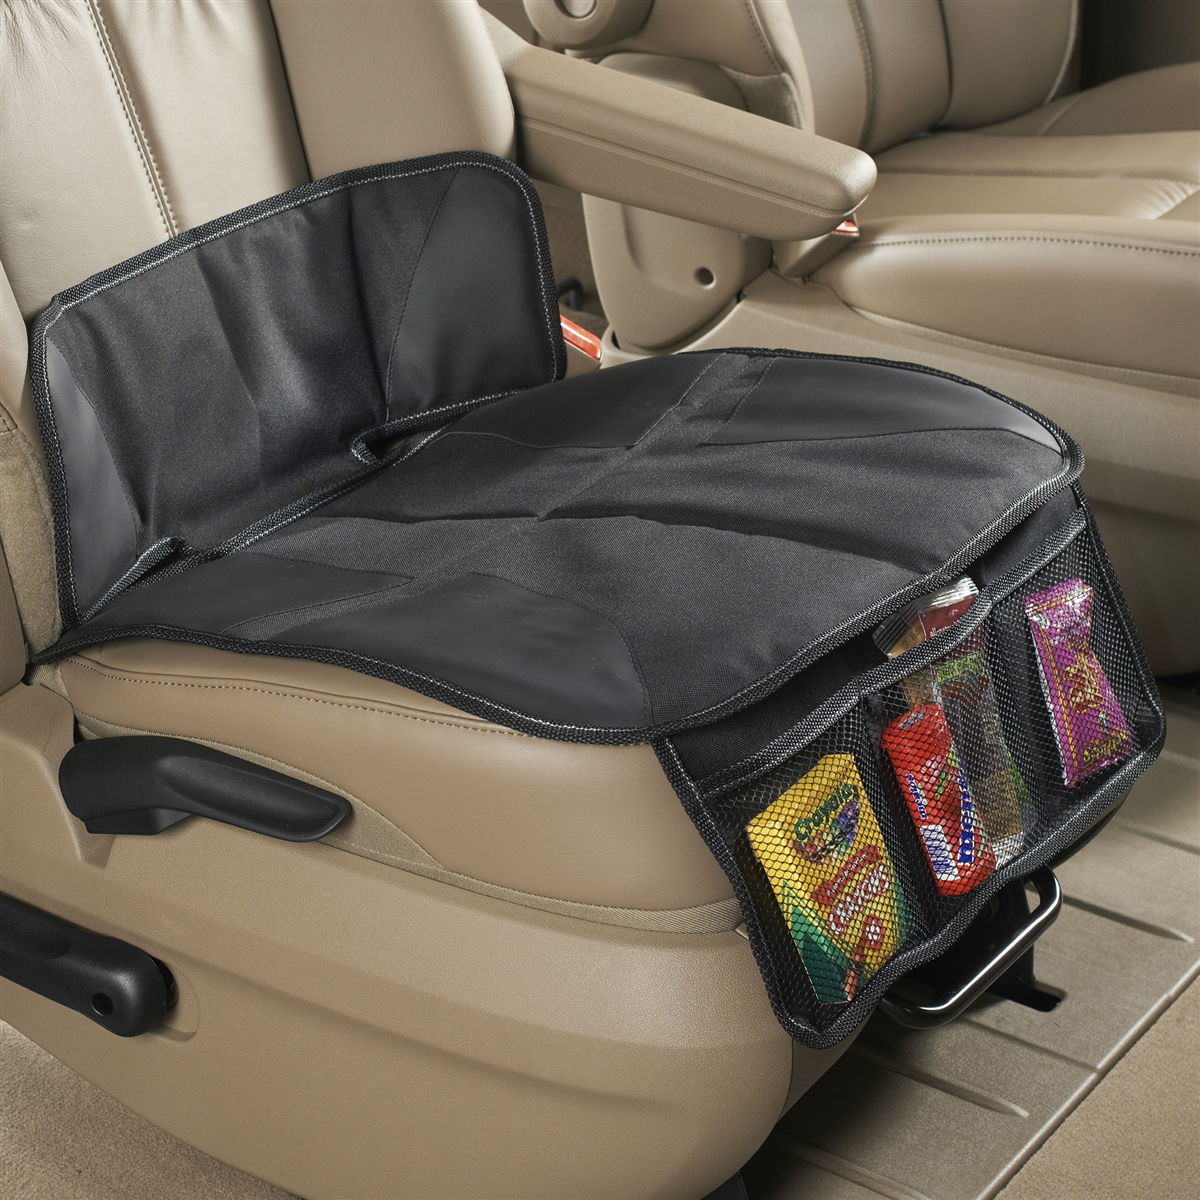 High Road Car Seat Protector Mat For Kids Booster And Seats